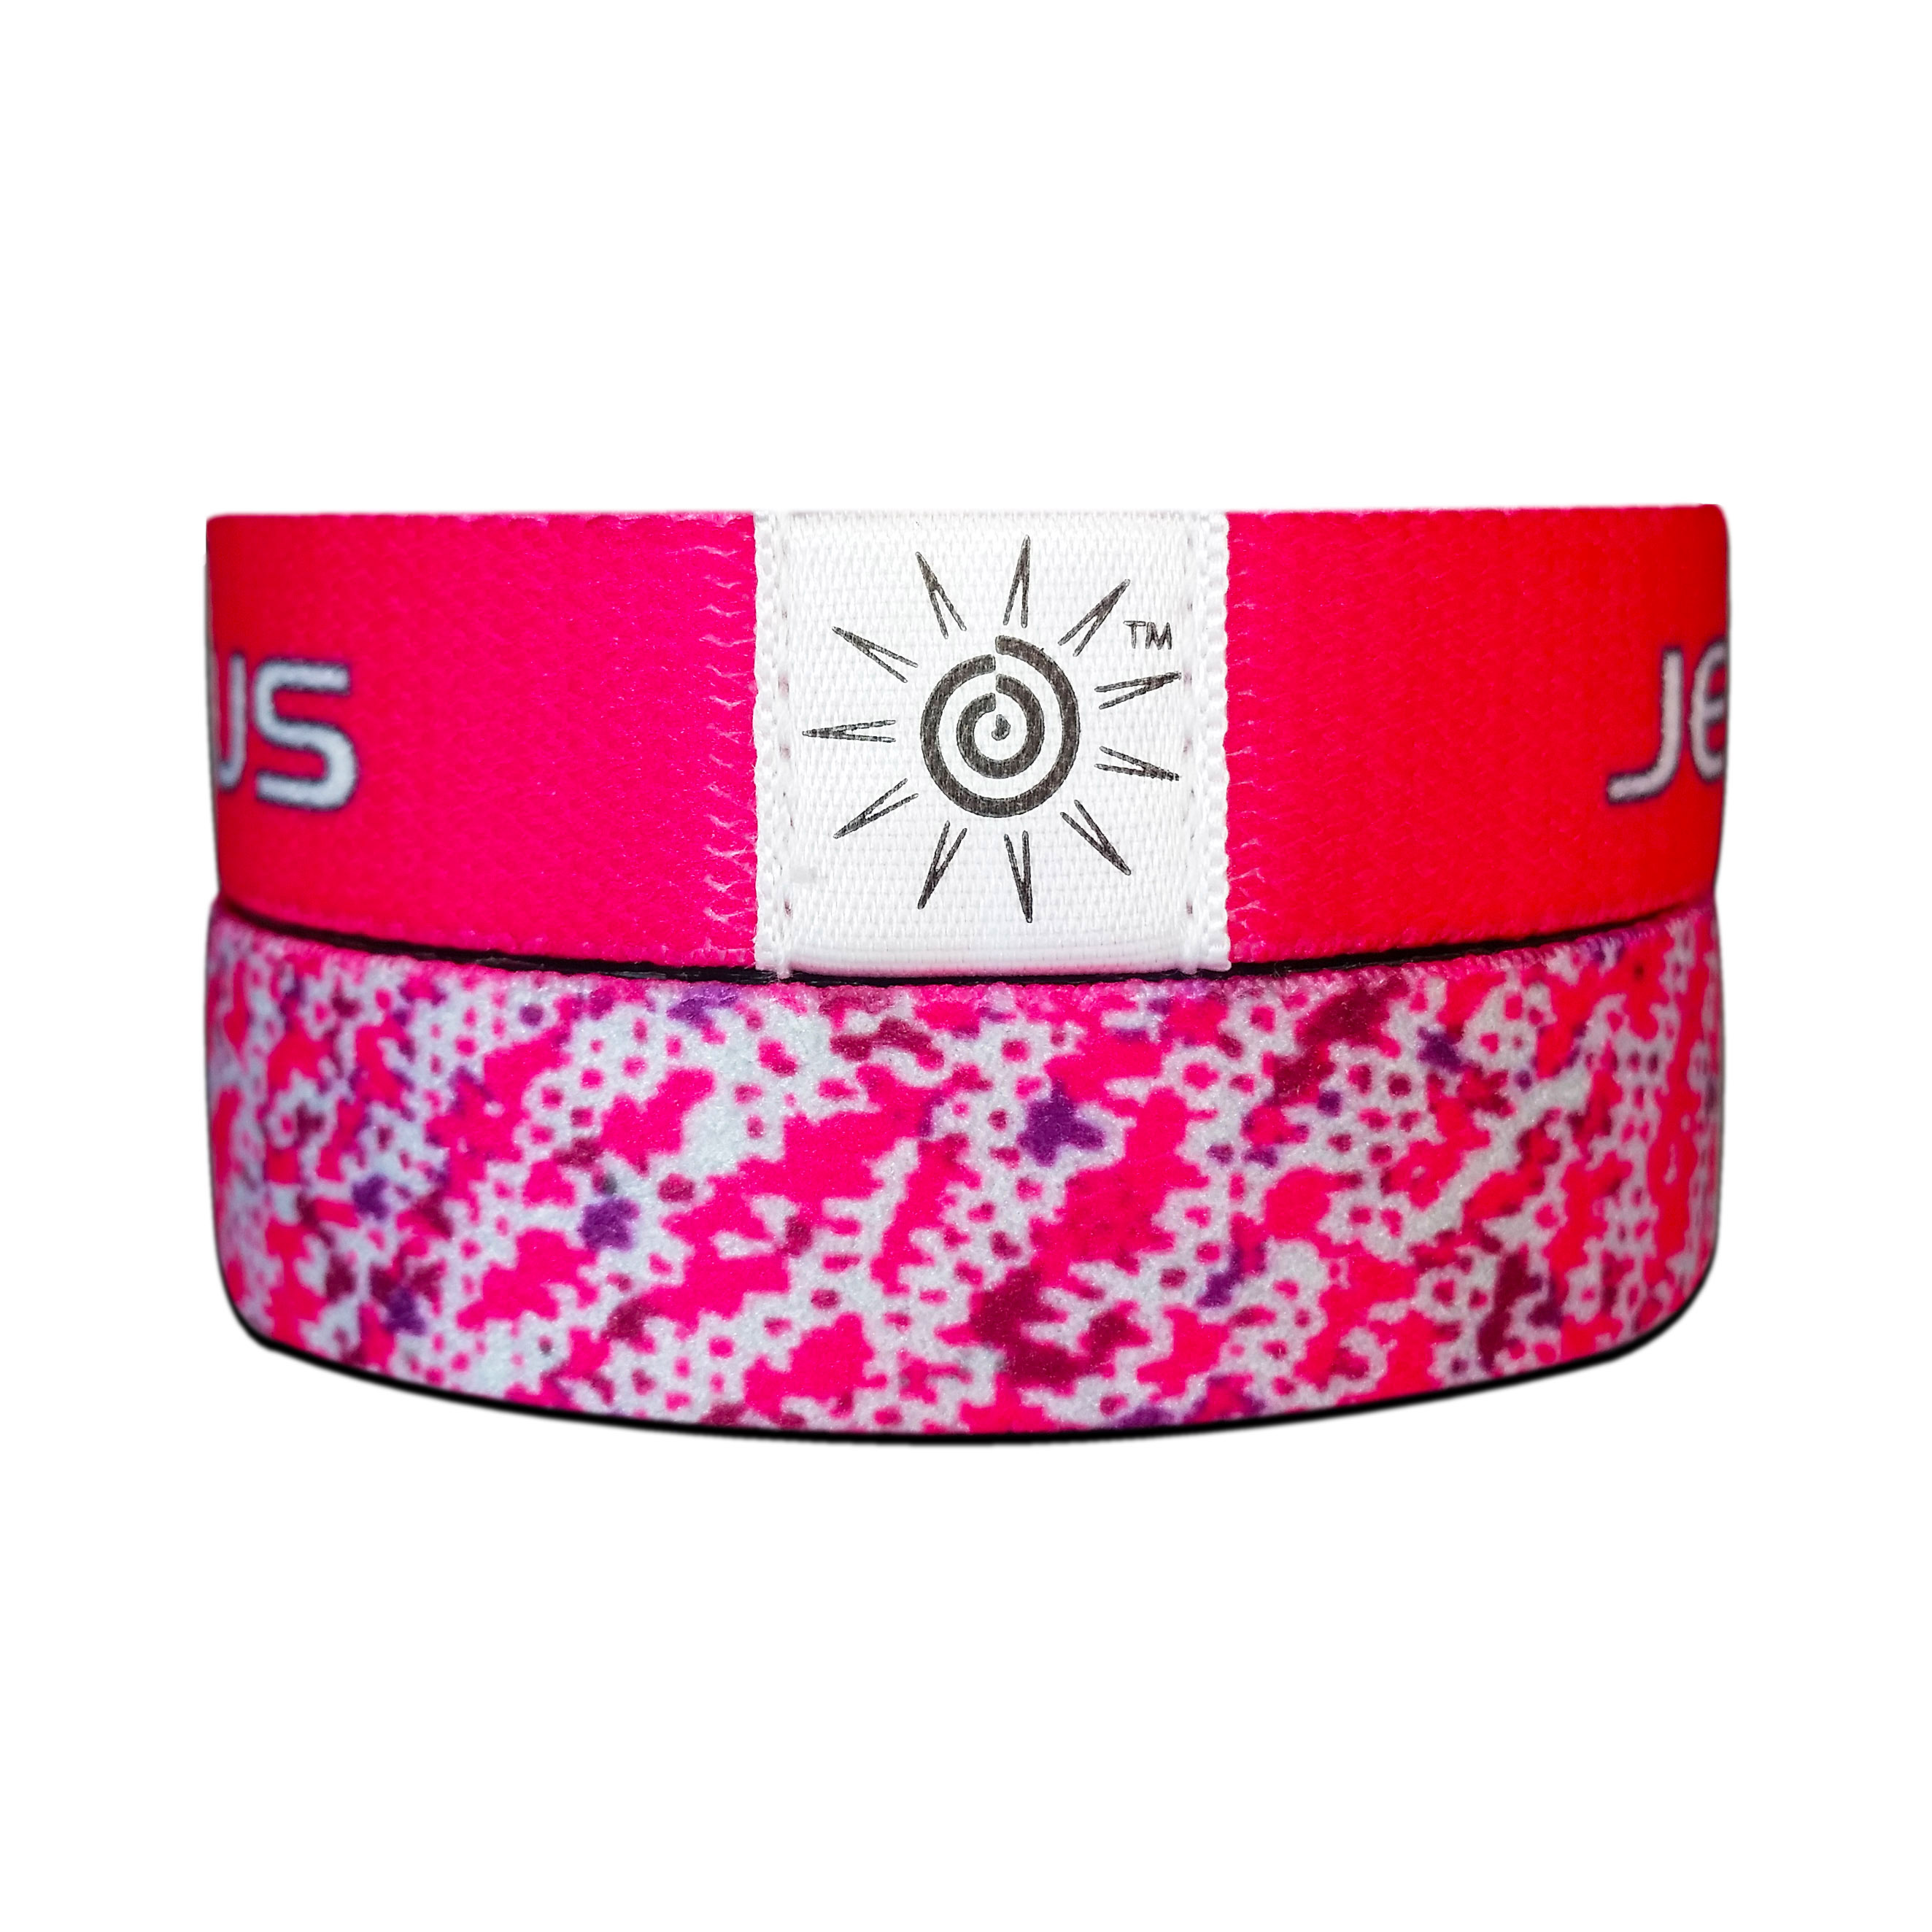 JESUS PINK bracelets - Beautiful Colors that everyone love